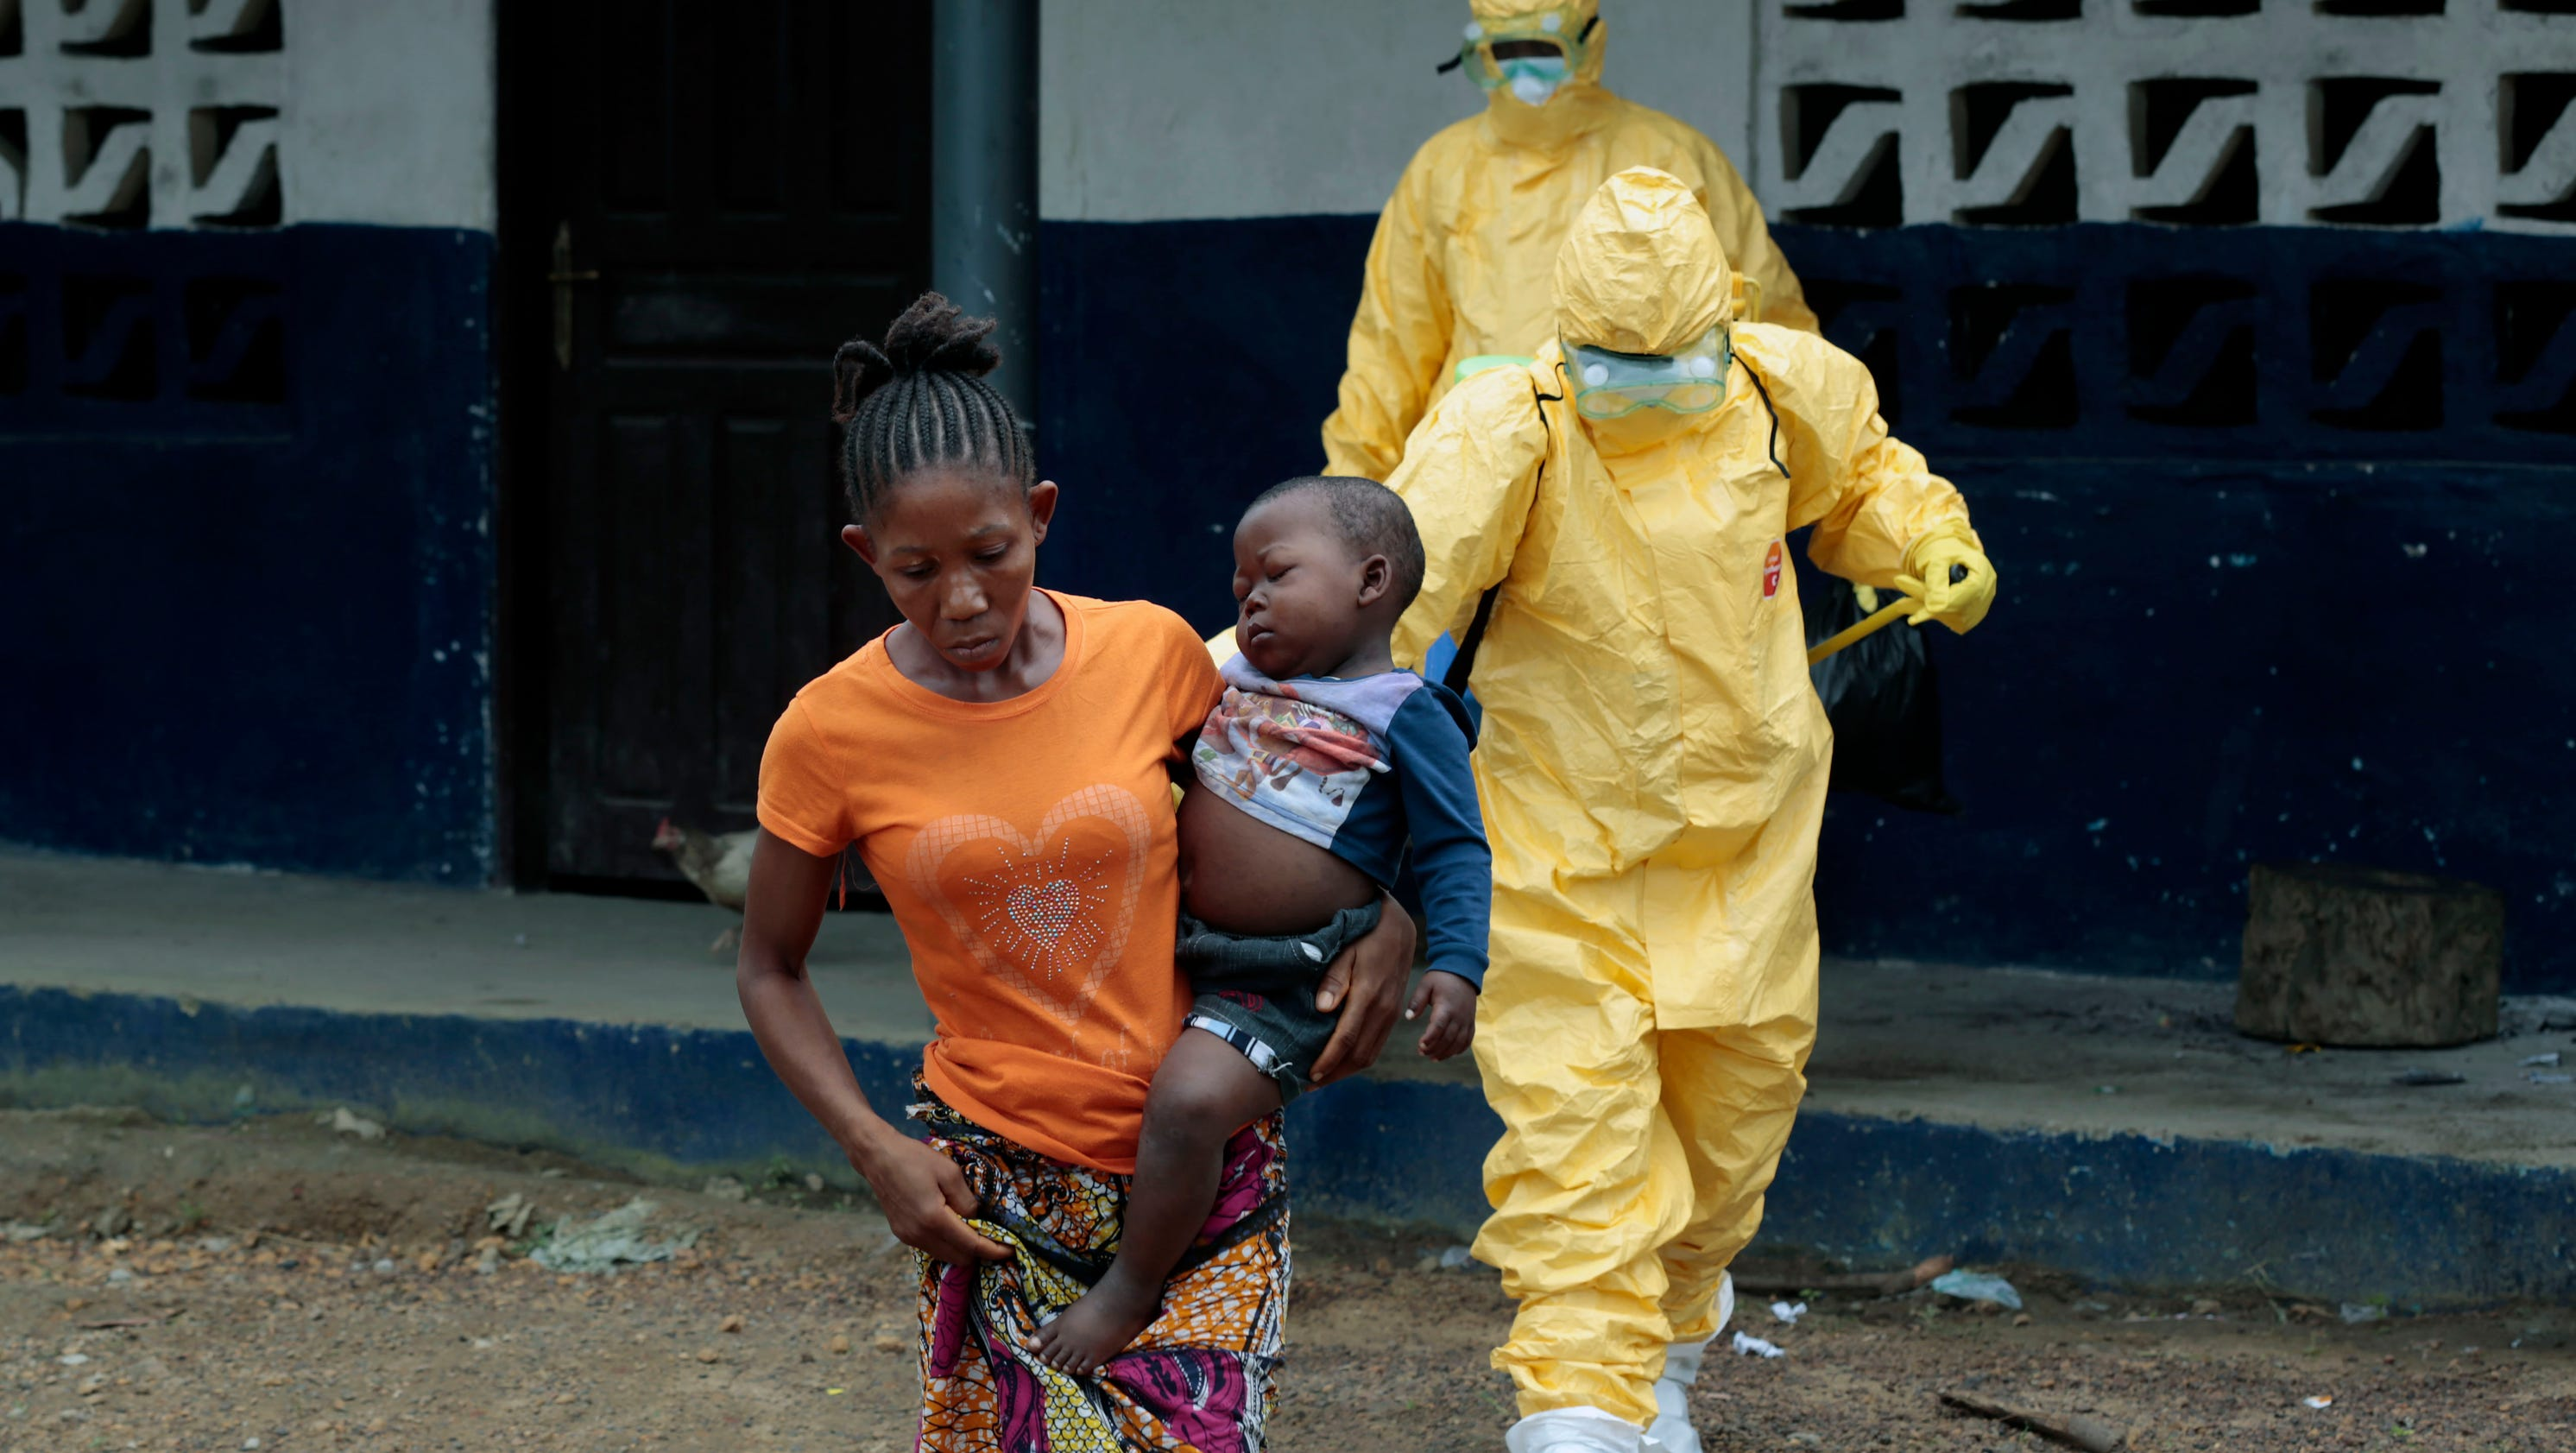 WHO Reports 'Strong Progress' in Fighting Ebola in Congo